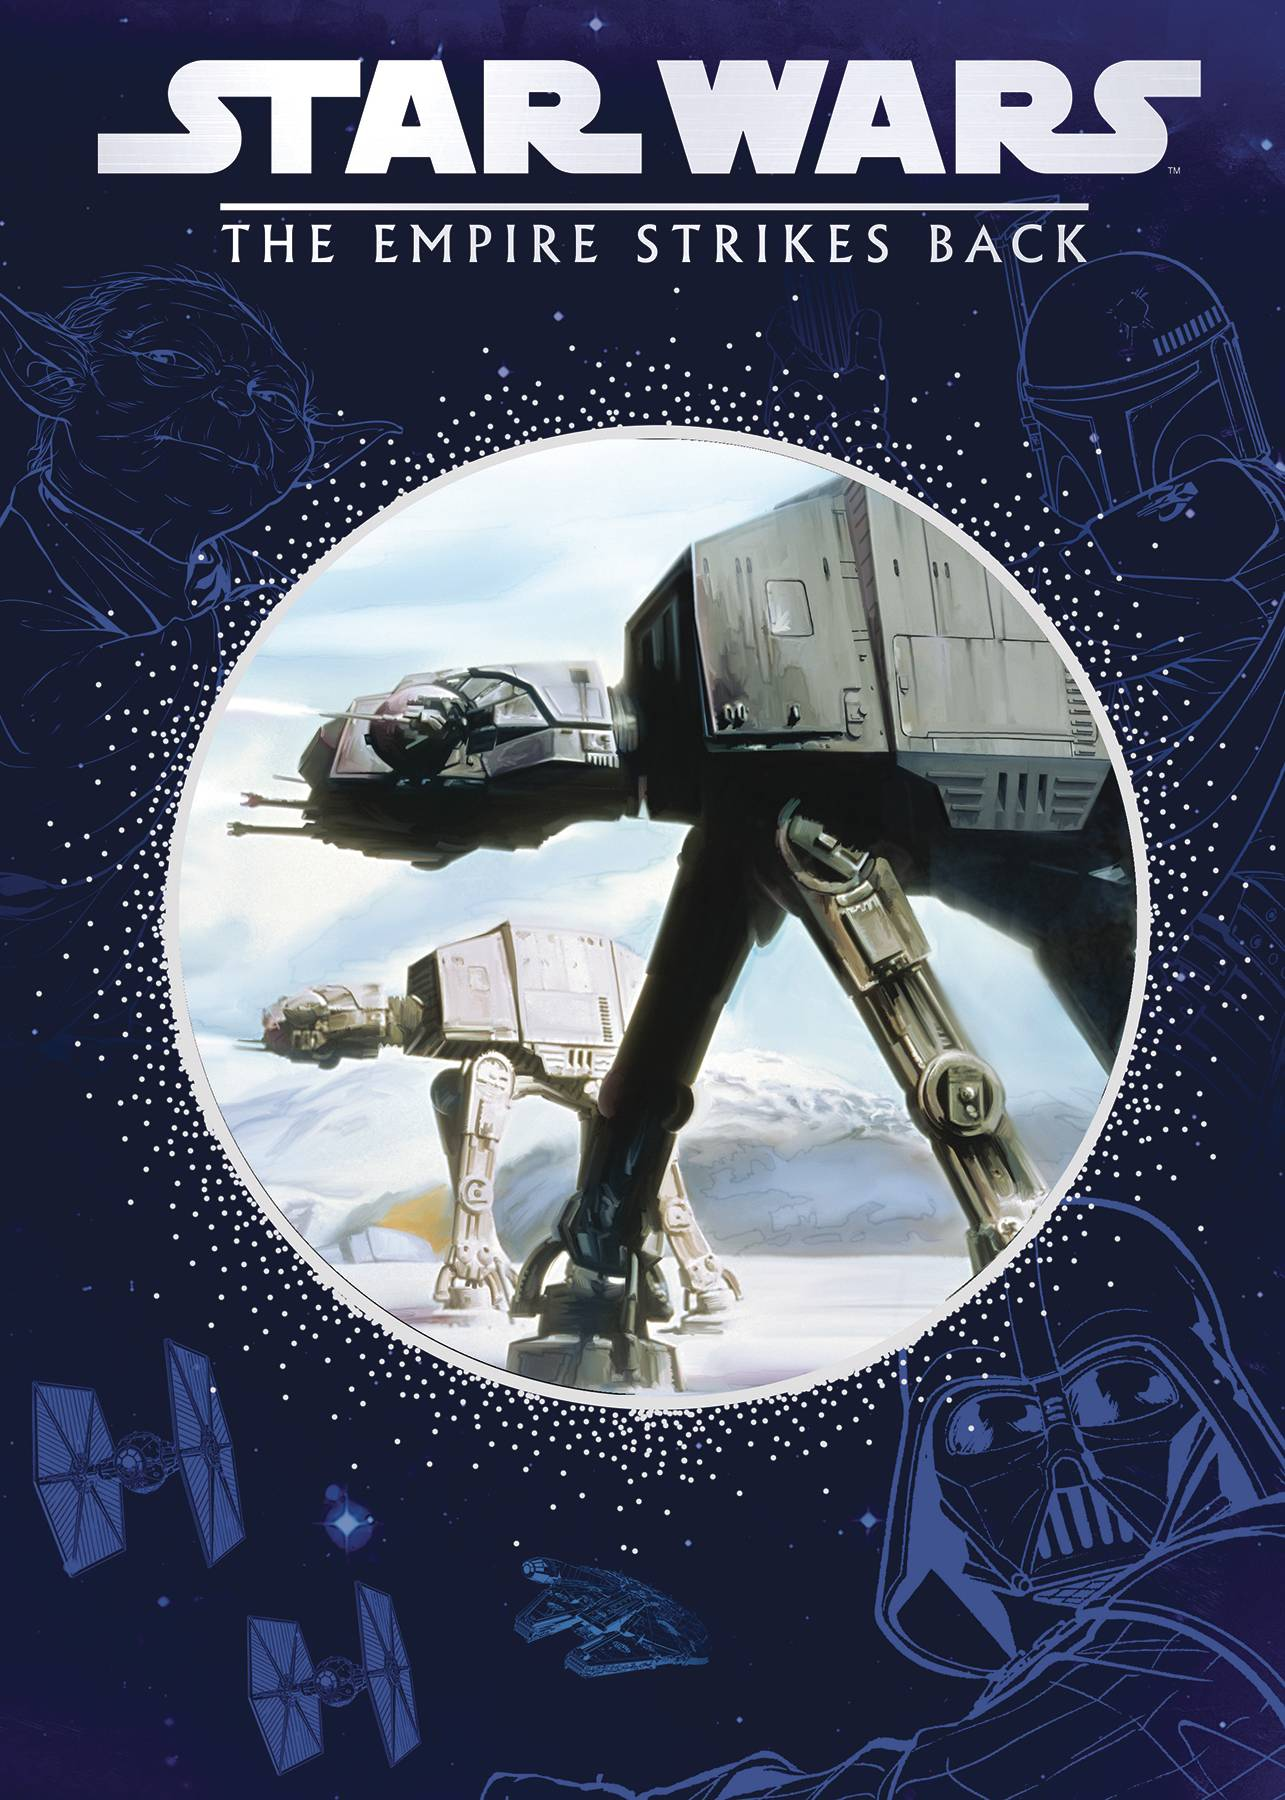 STAR WARS EMPIRE STRIKES BACK STORYBOOK DIE CUT CVR